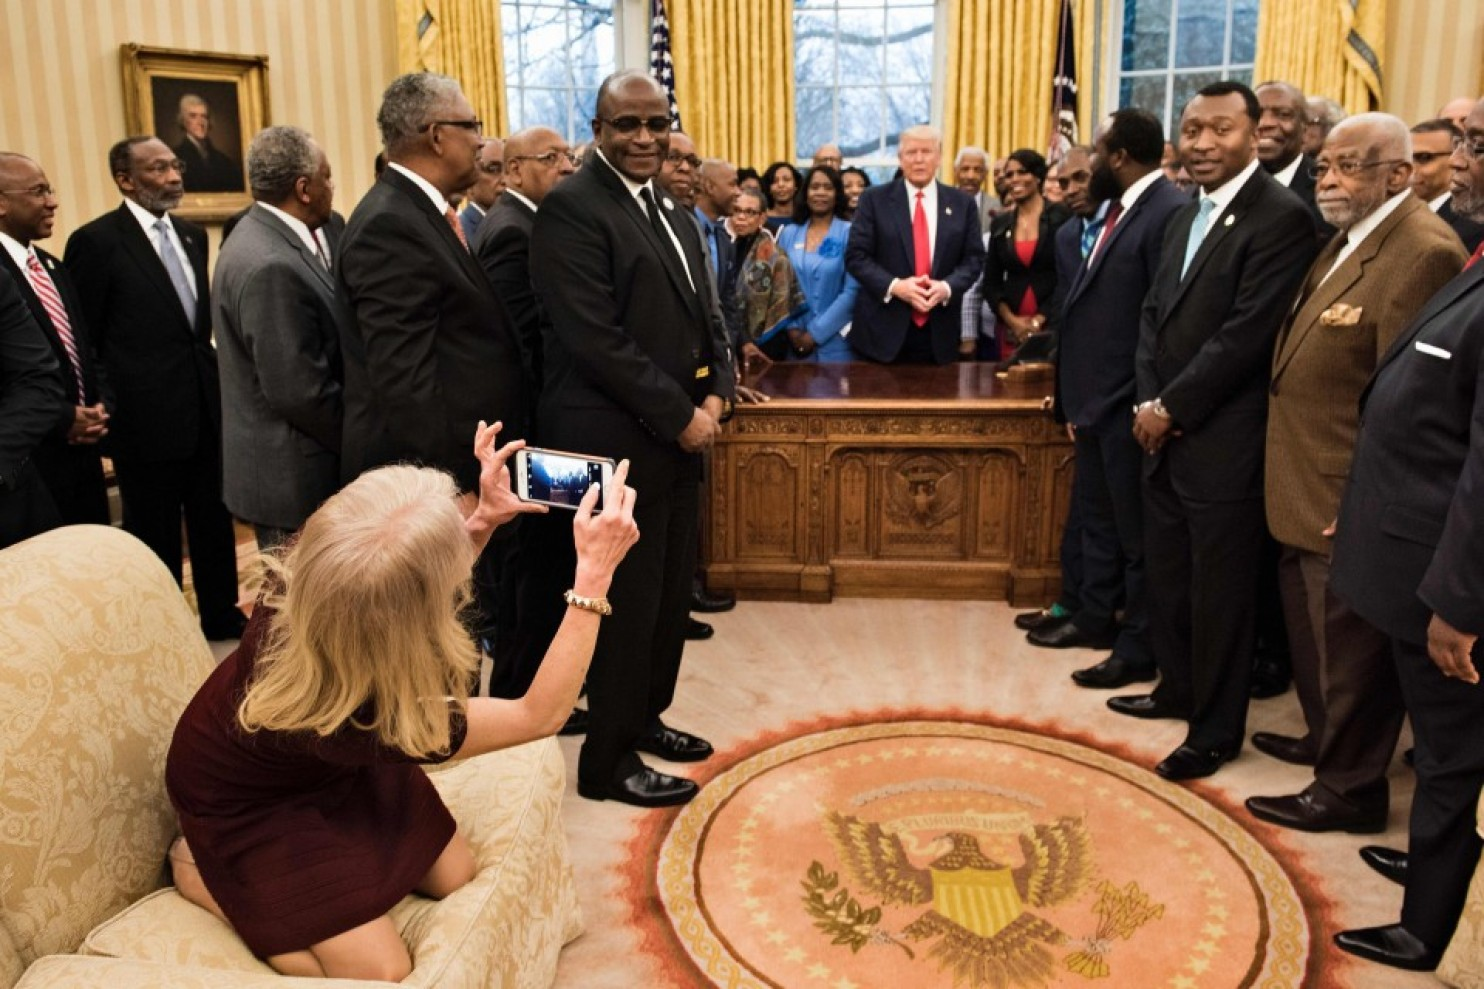 Counselor to the President Kellyanne Conway takes a photo Tuesday in the Oval Office. (Credit: Pool photo by Brendan Smialowski/Agence France-Presse)